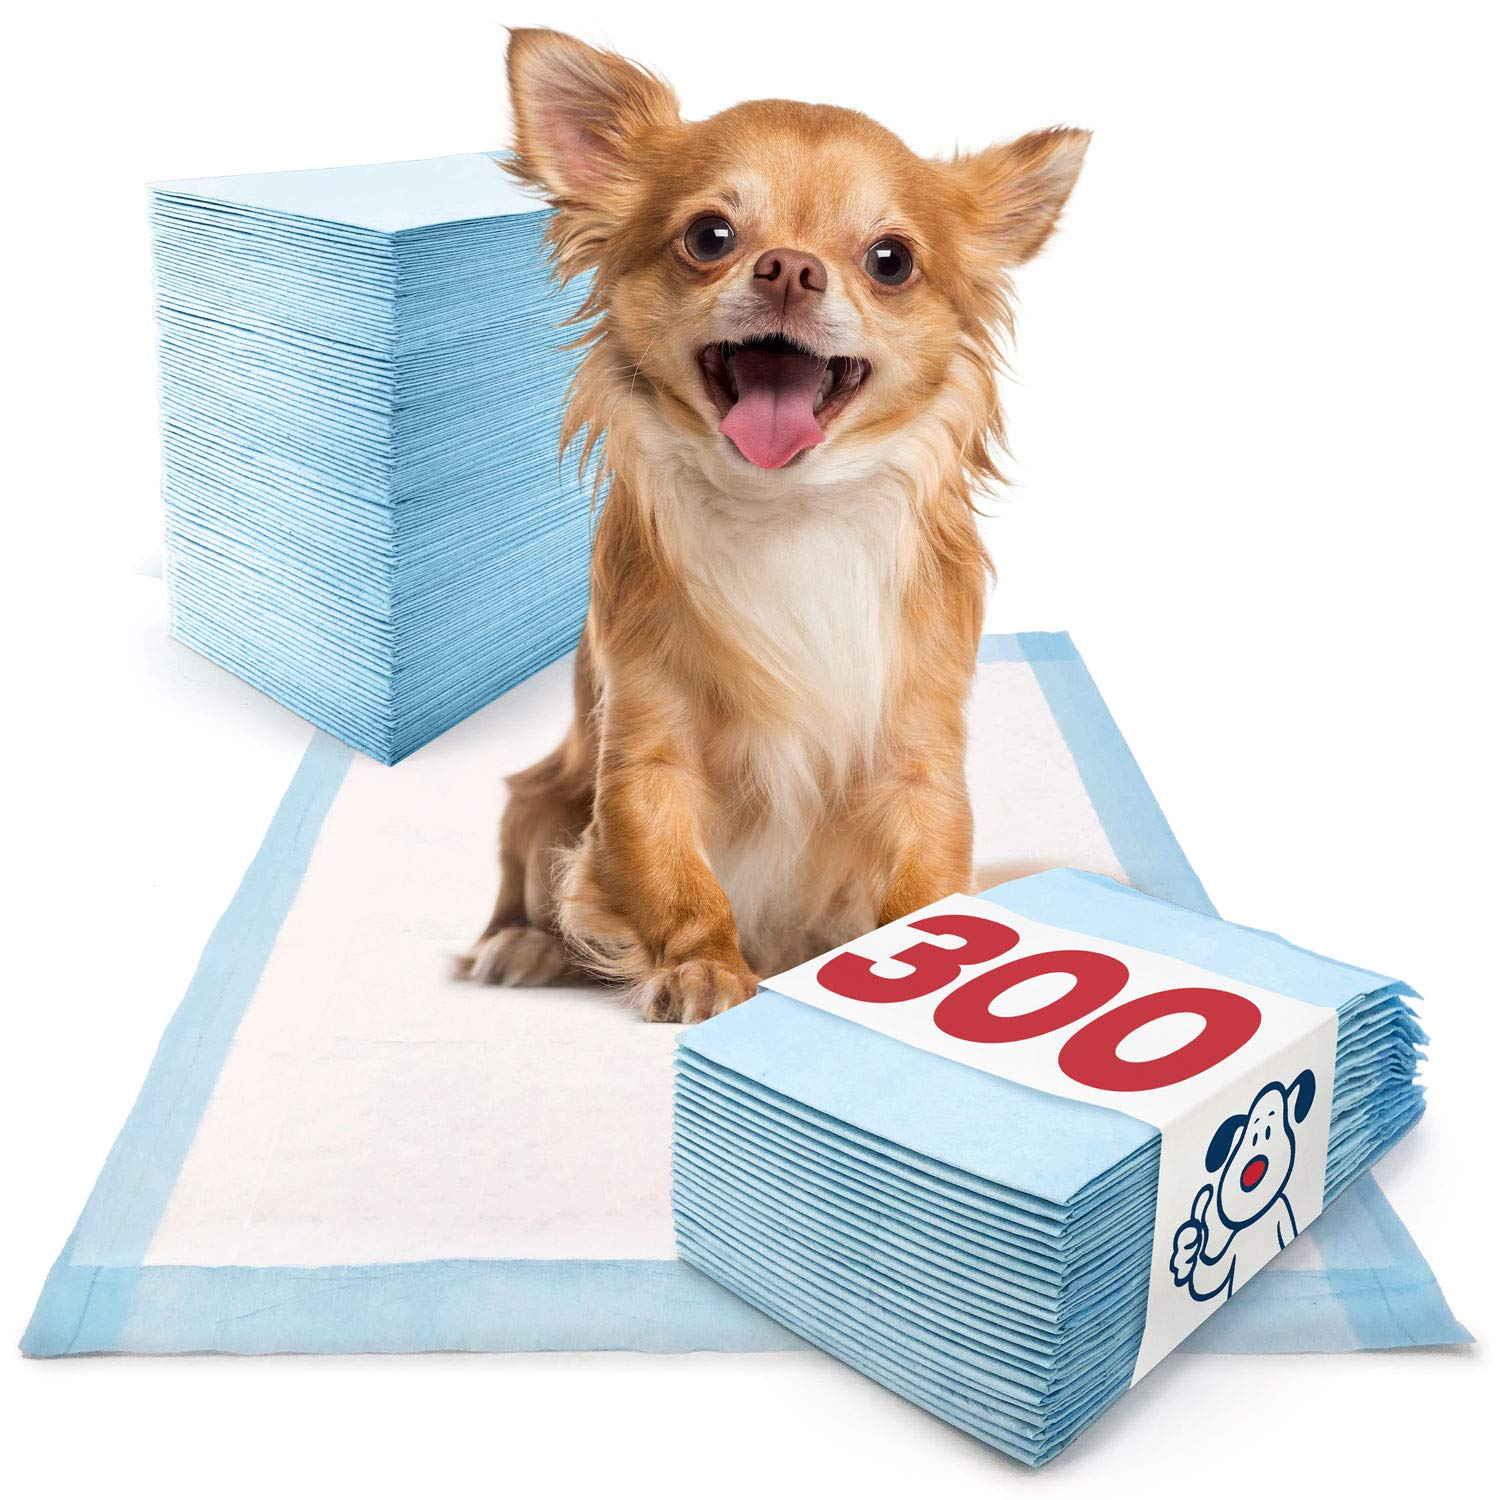 ValuePad Puppy Pads, Small 17x24 Inch, 300 Count - Economy Training Pads for Dogs, Leak Resistant 5-Layer Design, Perfect for Puppies, Smaller Dogs & Even Litter Boxes by ValuePad